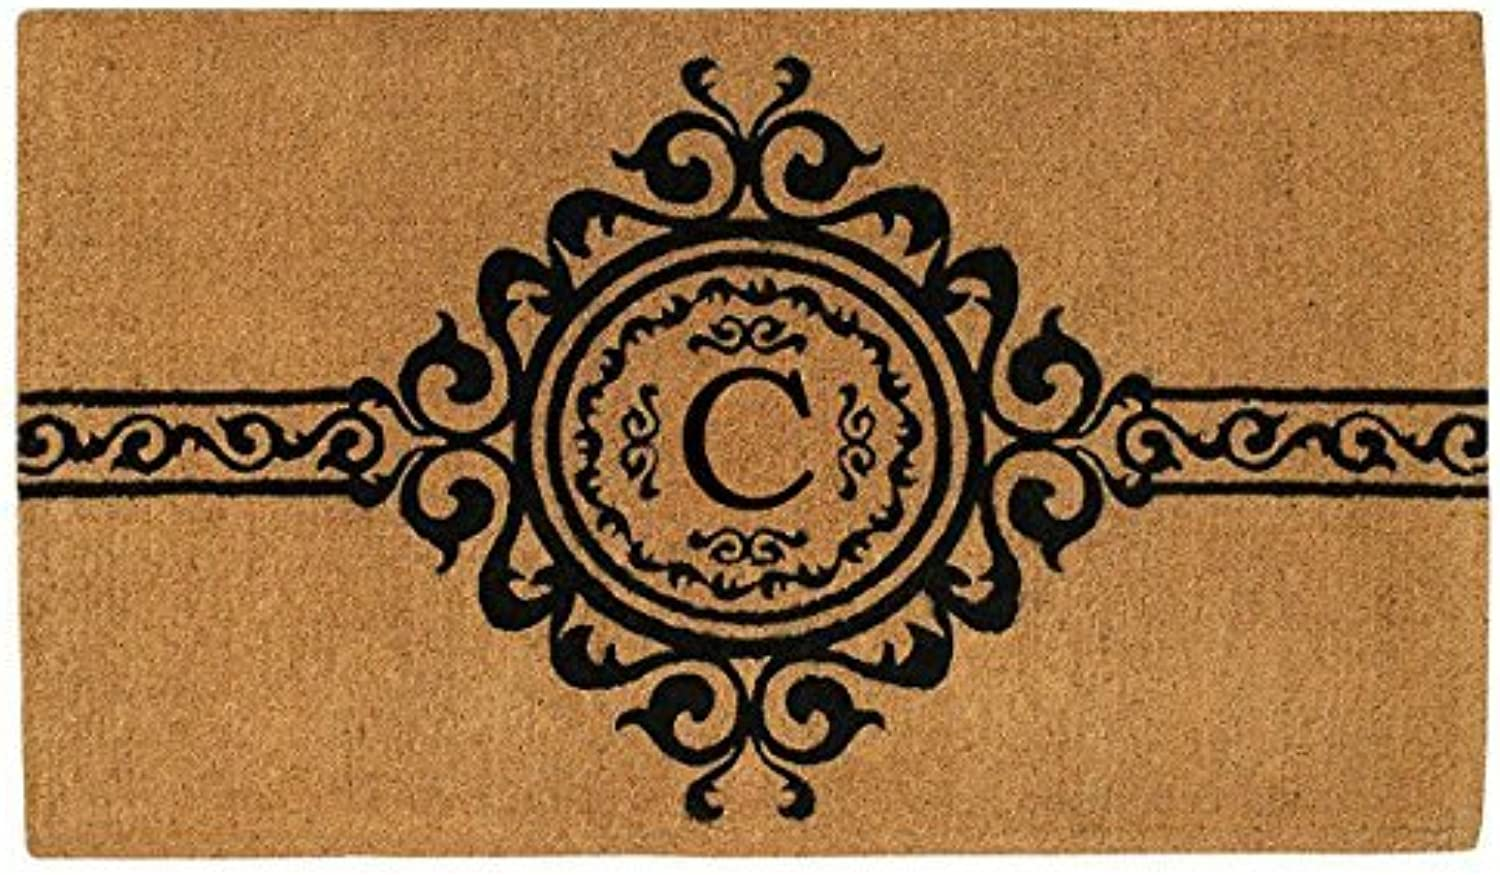 Home & More 180072436C Garbo 2' X 3' Extra-thick Monogrammed Doormat (Letter C)